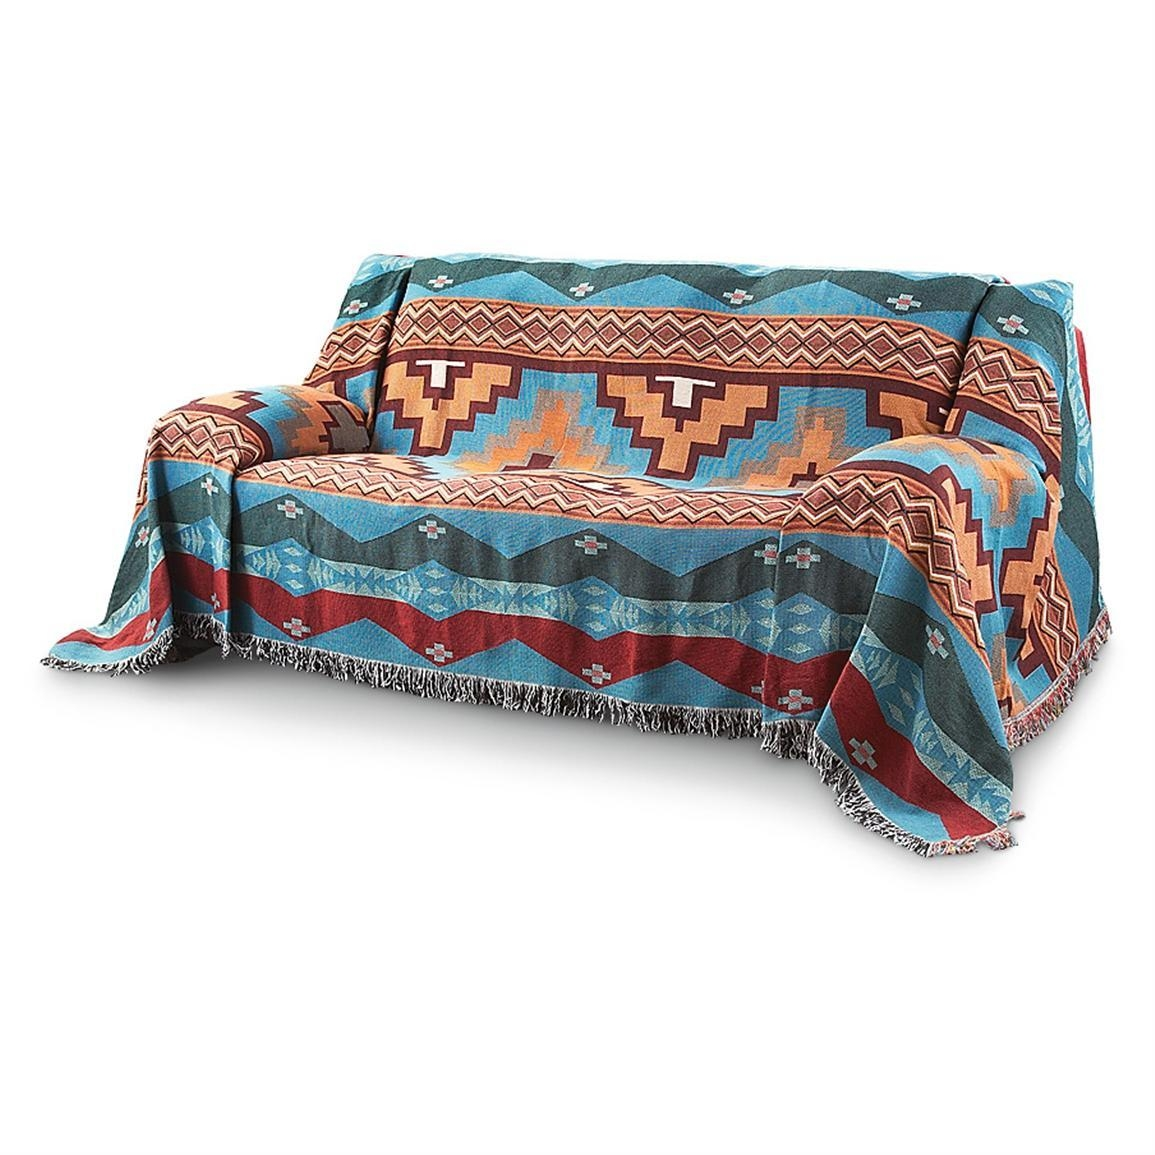 River Canyon Furniture Throw – 166656, Furniture Covers At In Turquoise Sofa Covers (Image 19 of 20)